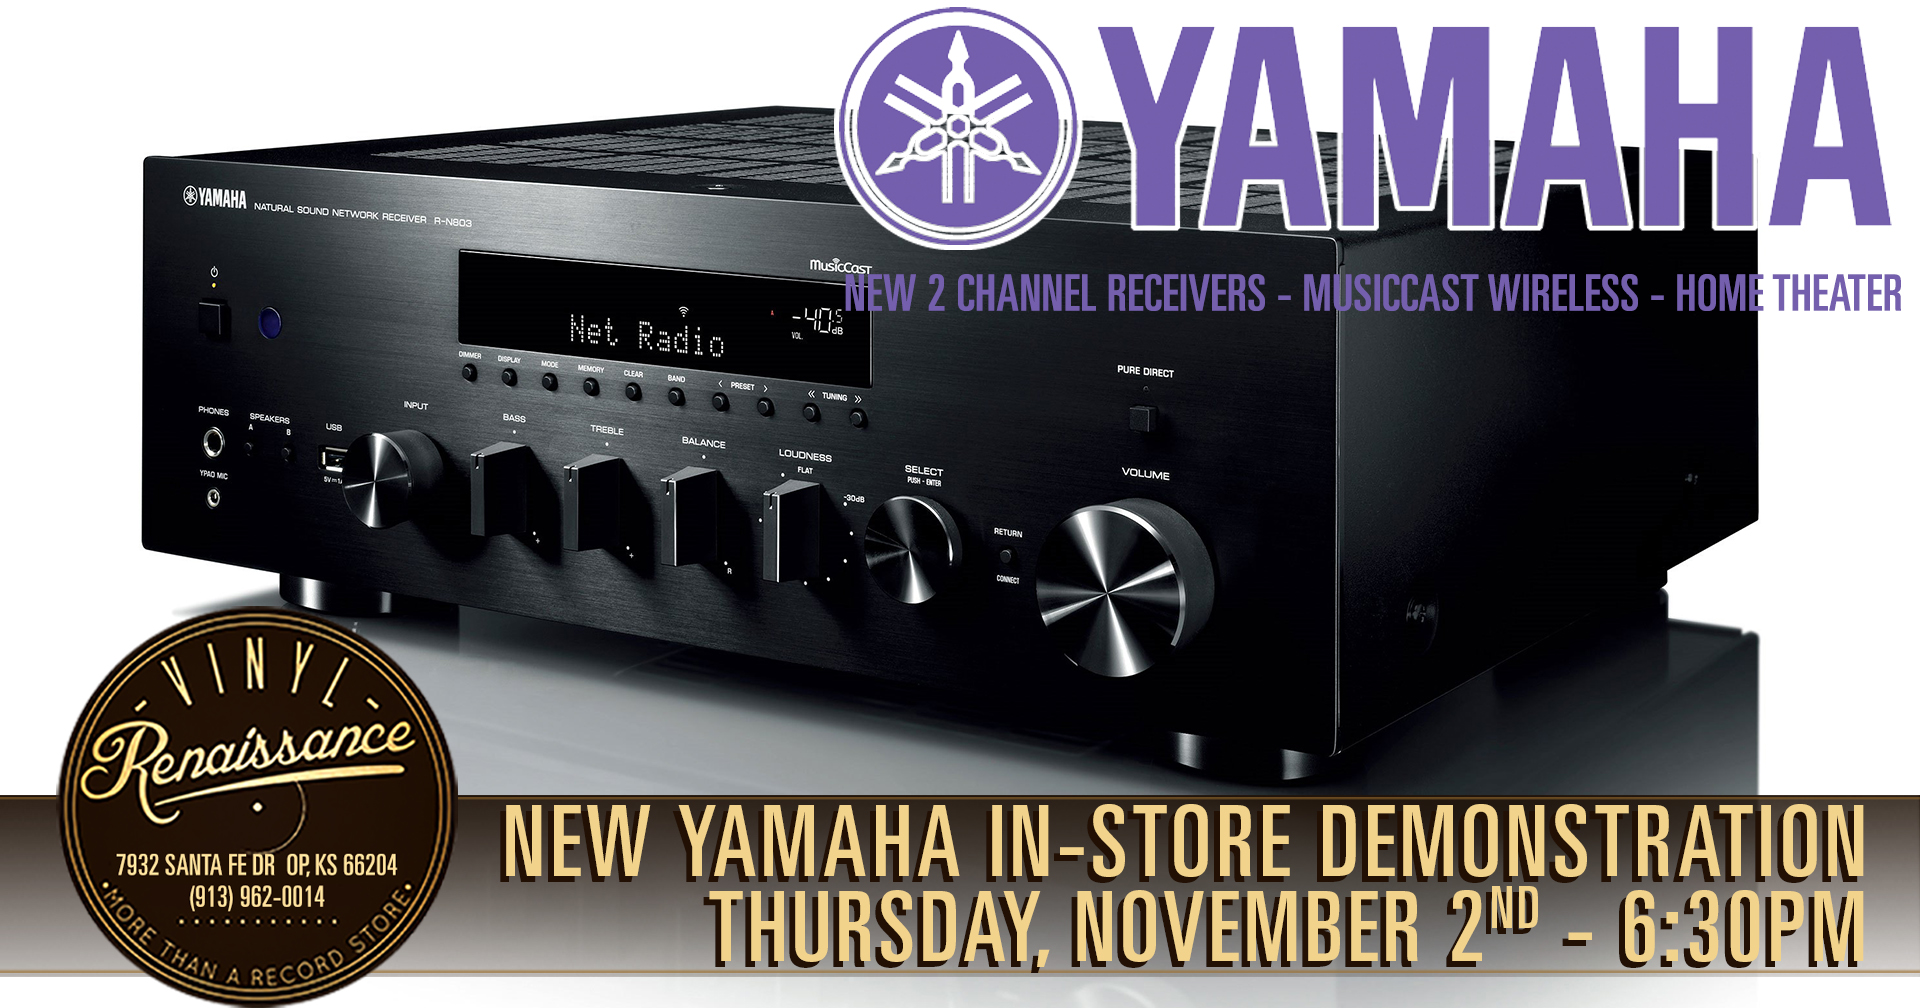 New Yamaha In-Store Demonstration!